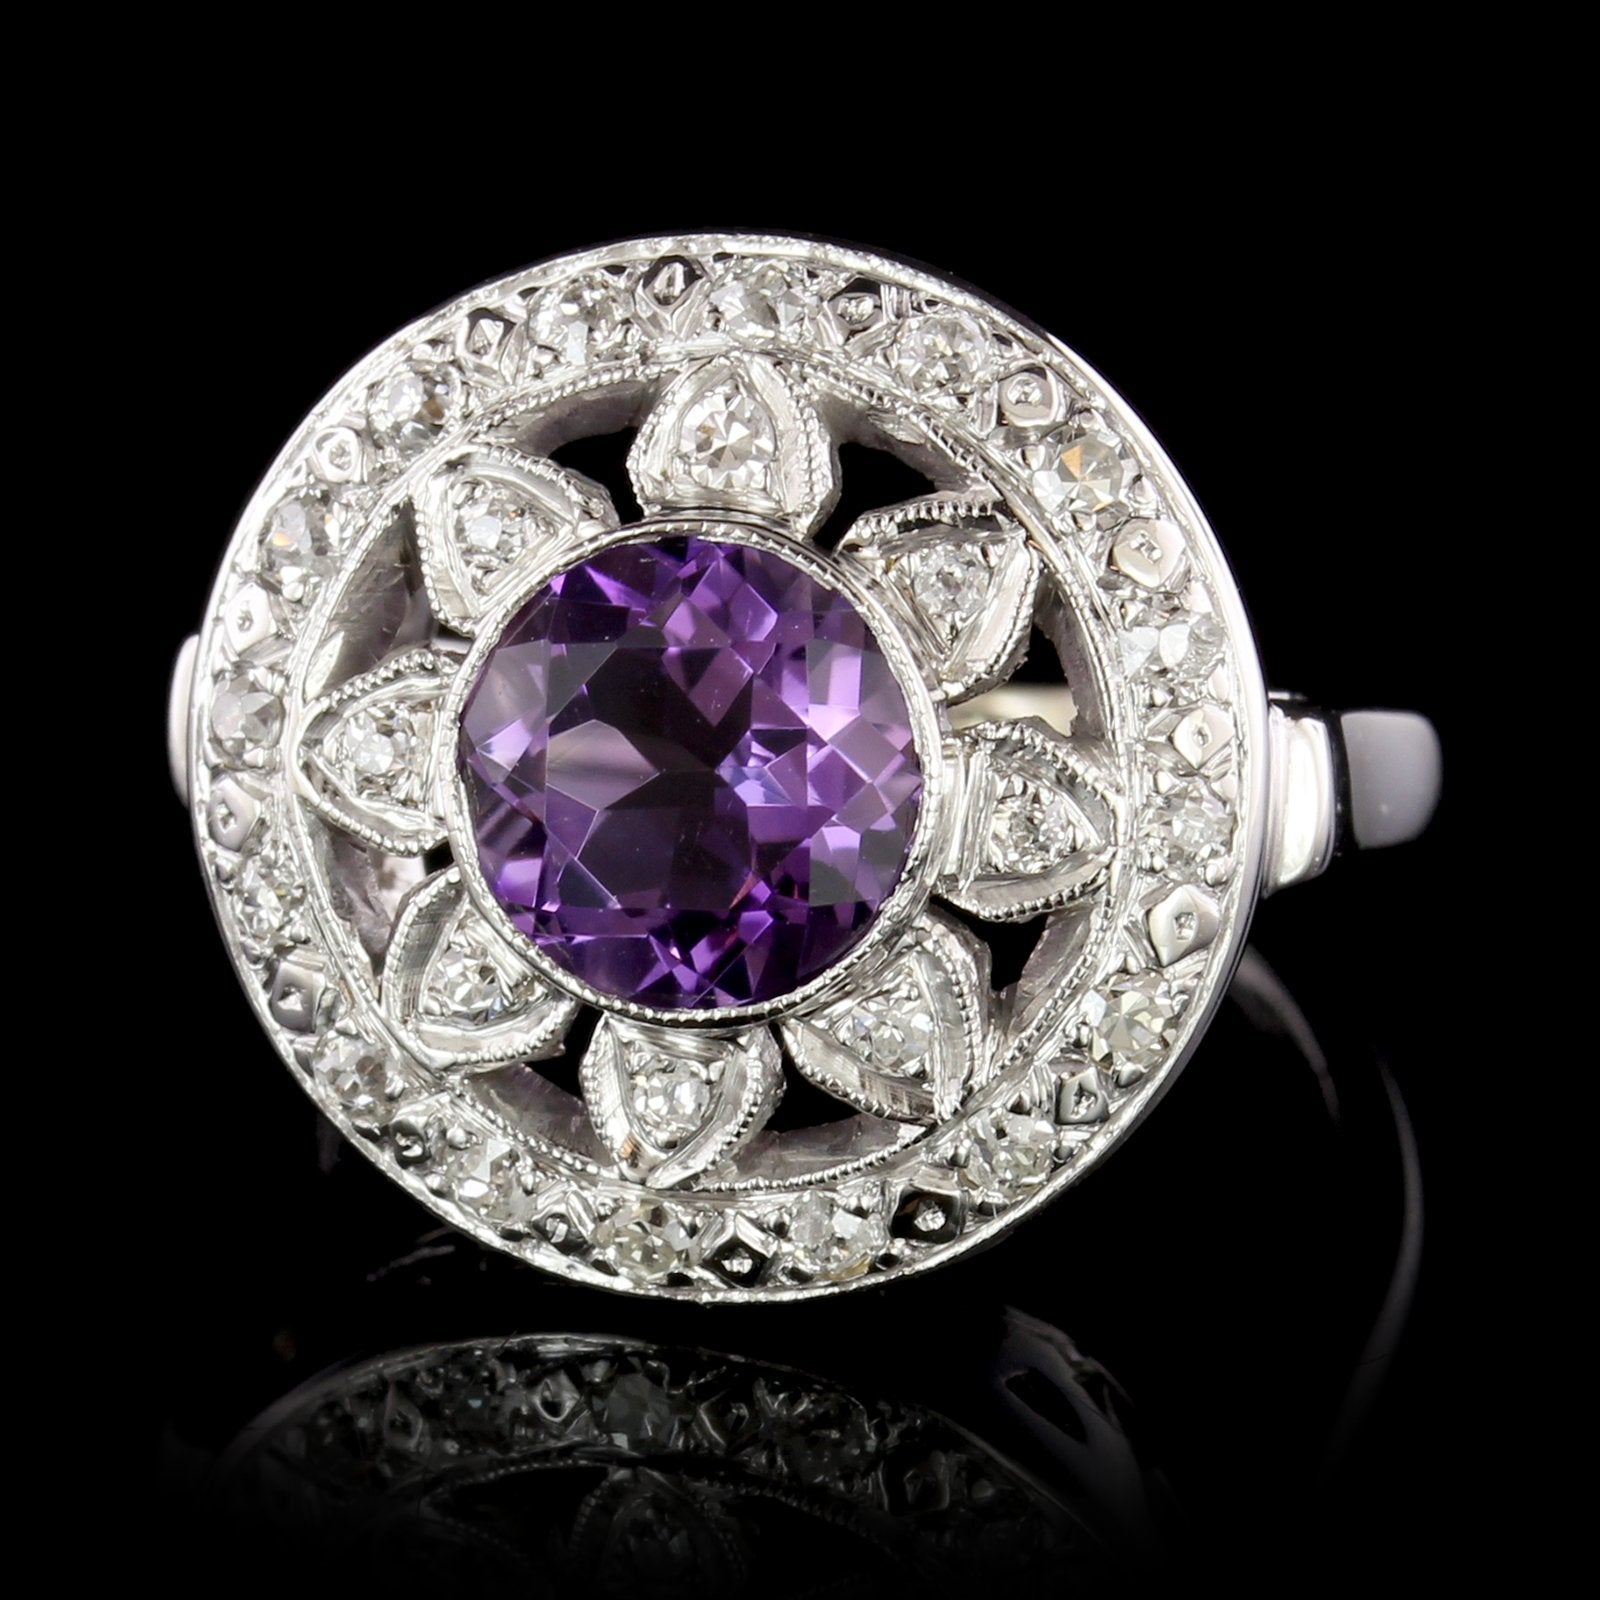 14K White Gold Estate Amethyst Diamond Ring